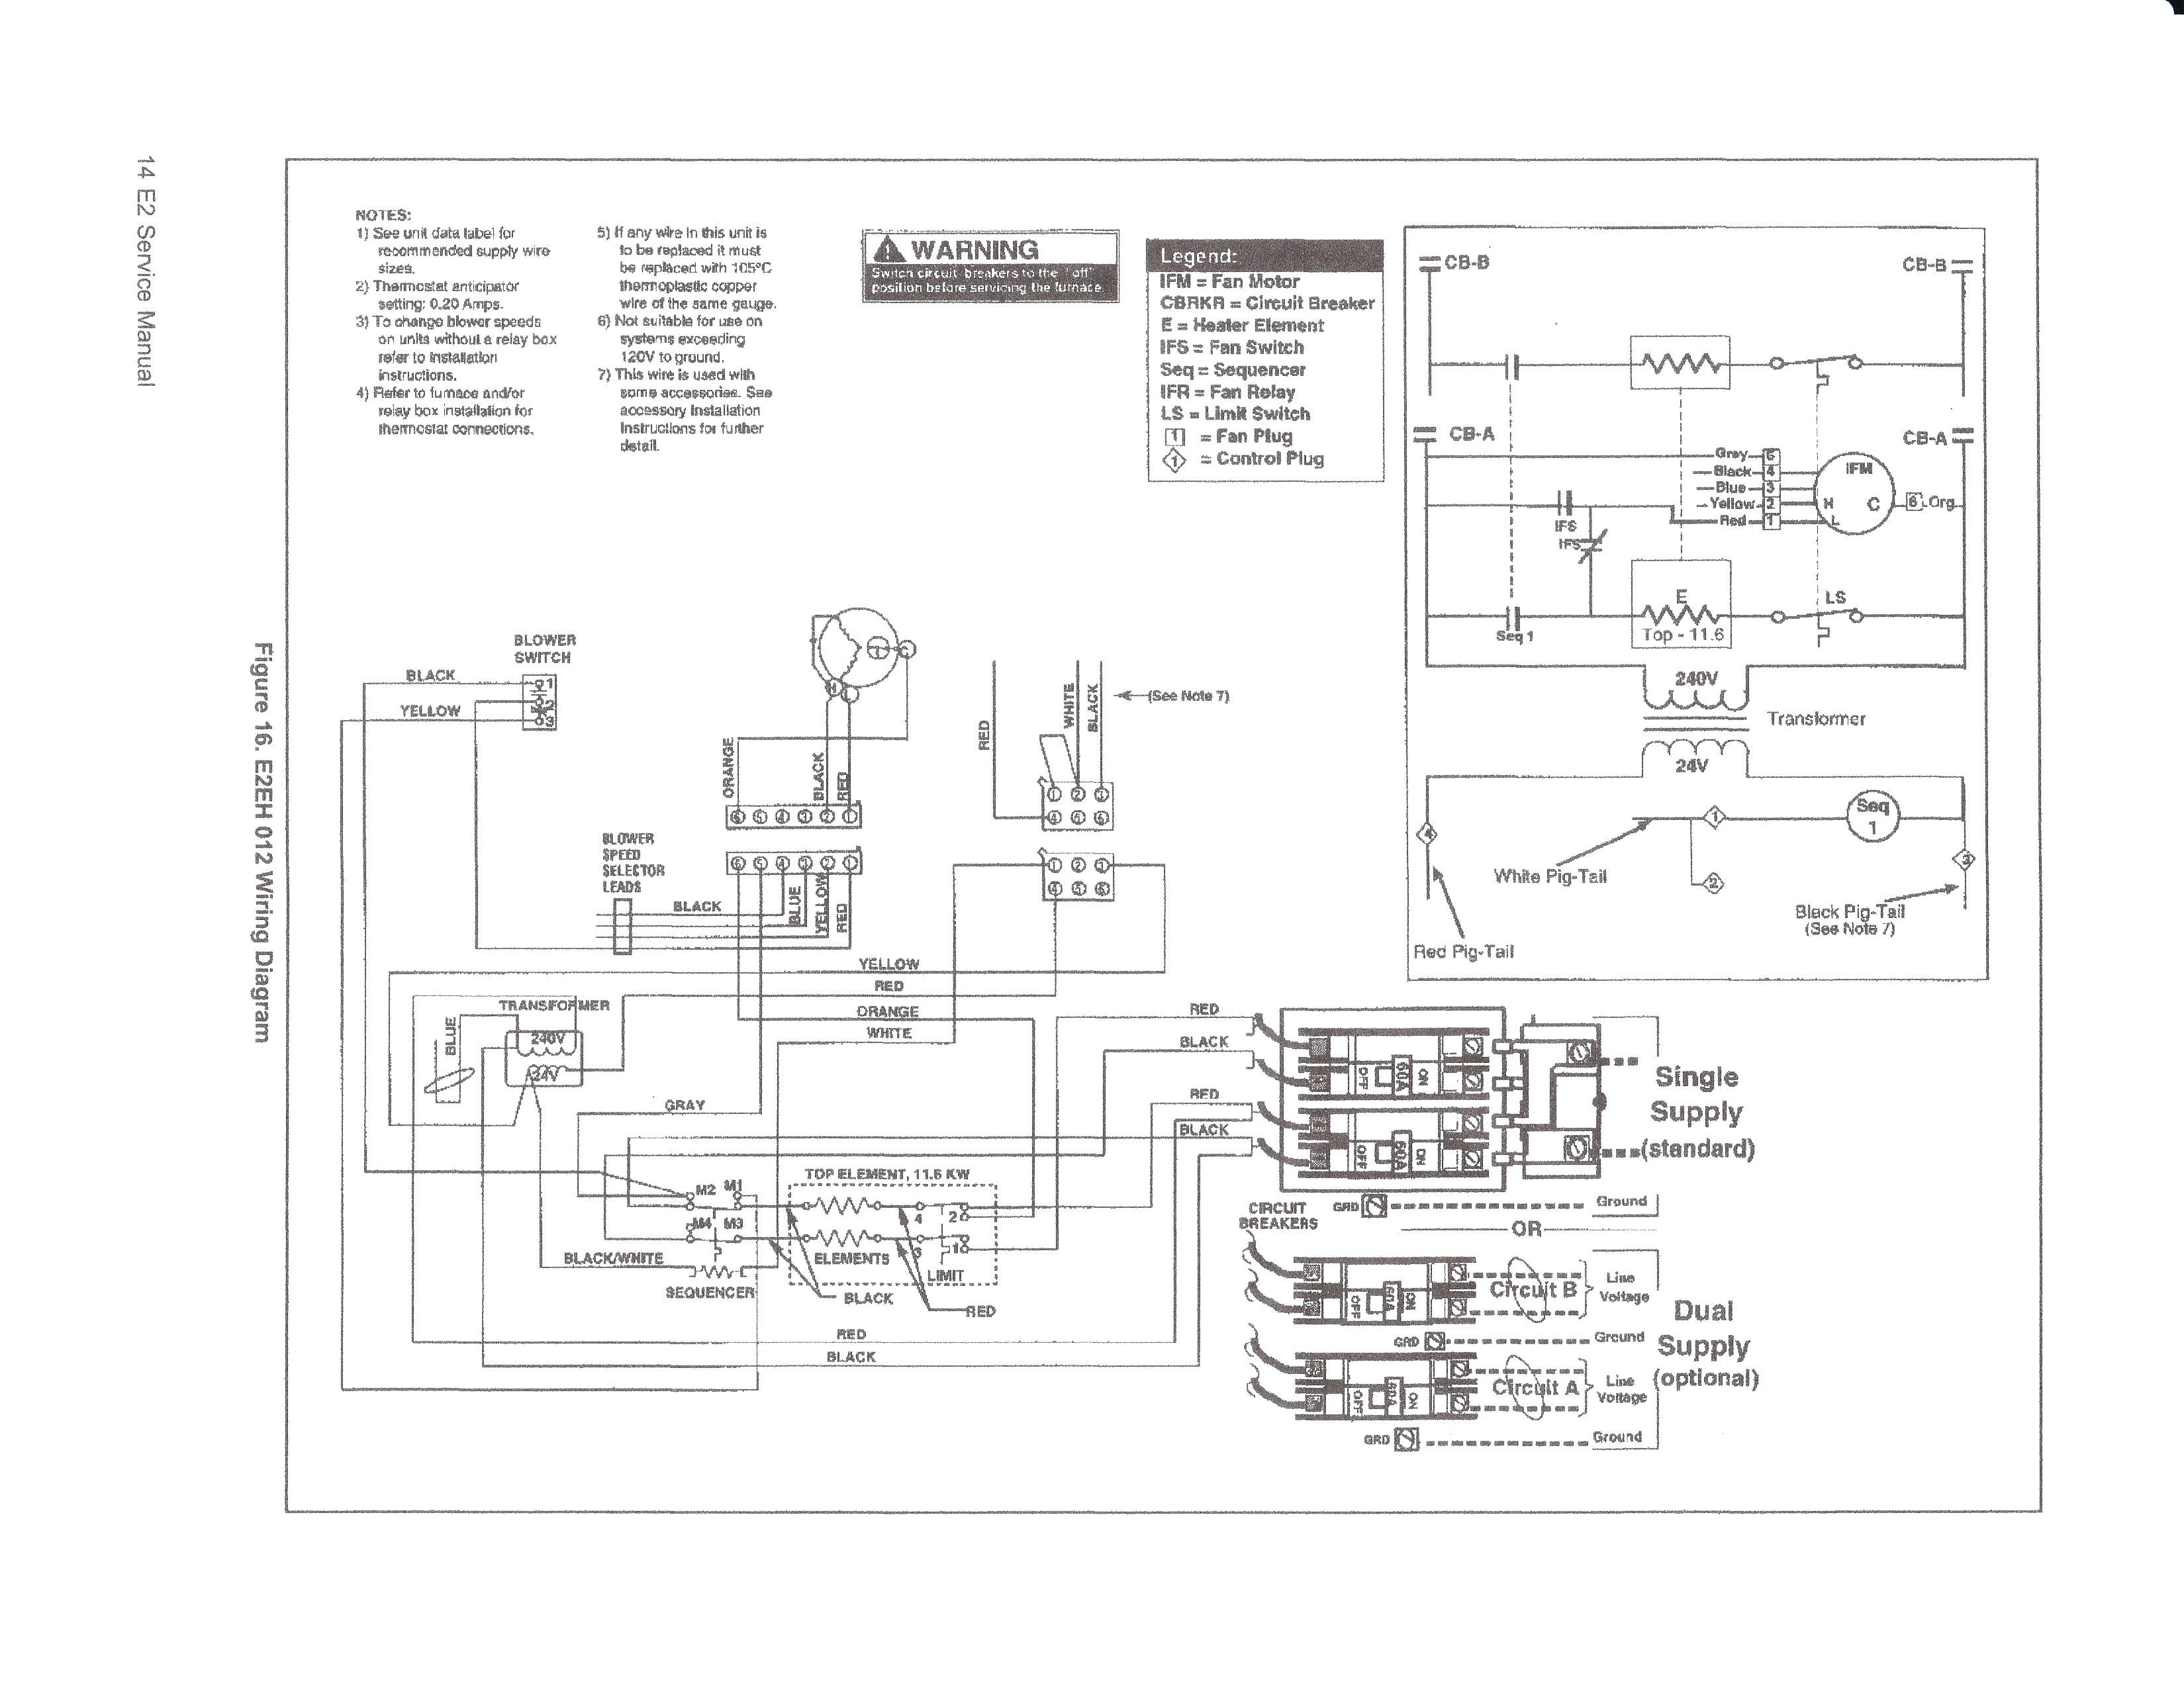 Intertherm Electric Furnace Wiring Diagram Luxury Electric Motor Wiring Diagram Capacitor Century within Capa Power